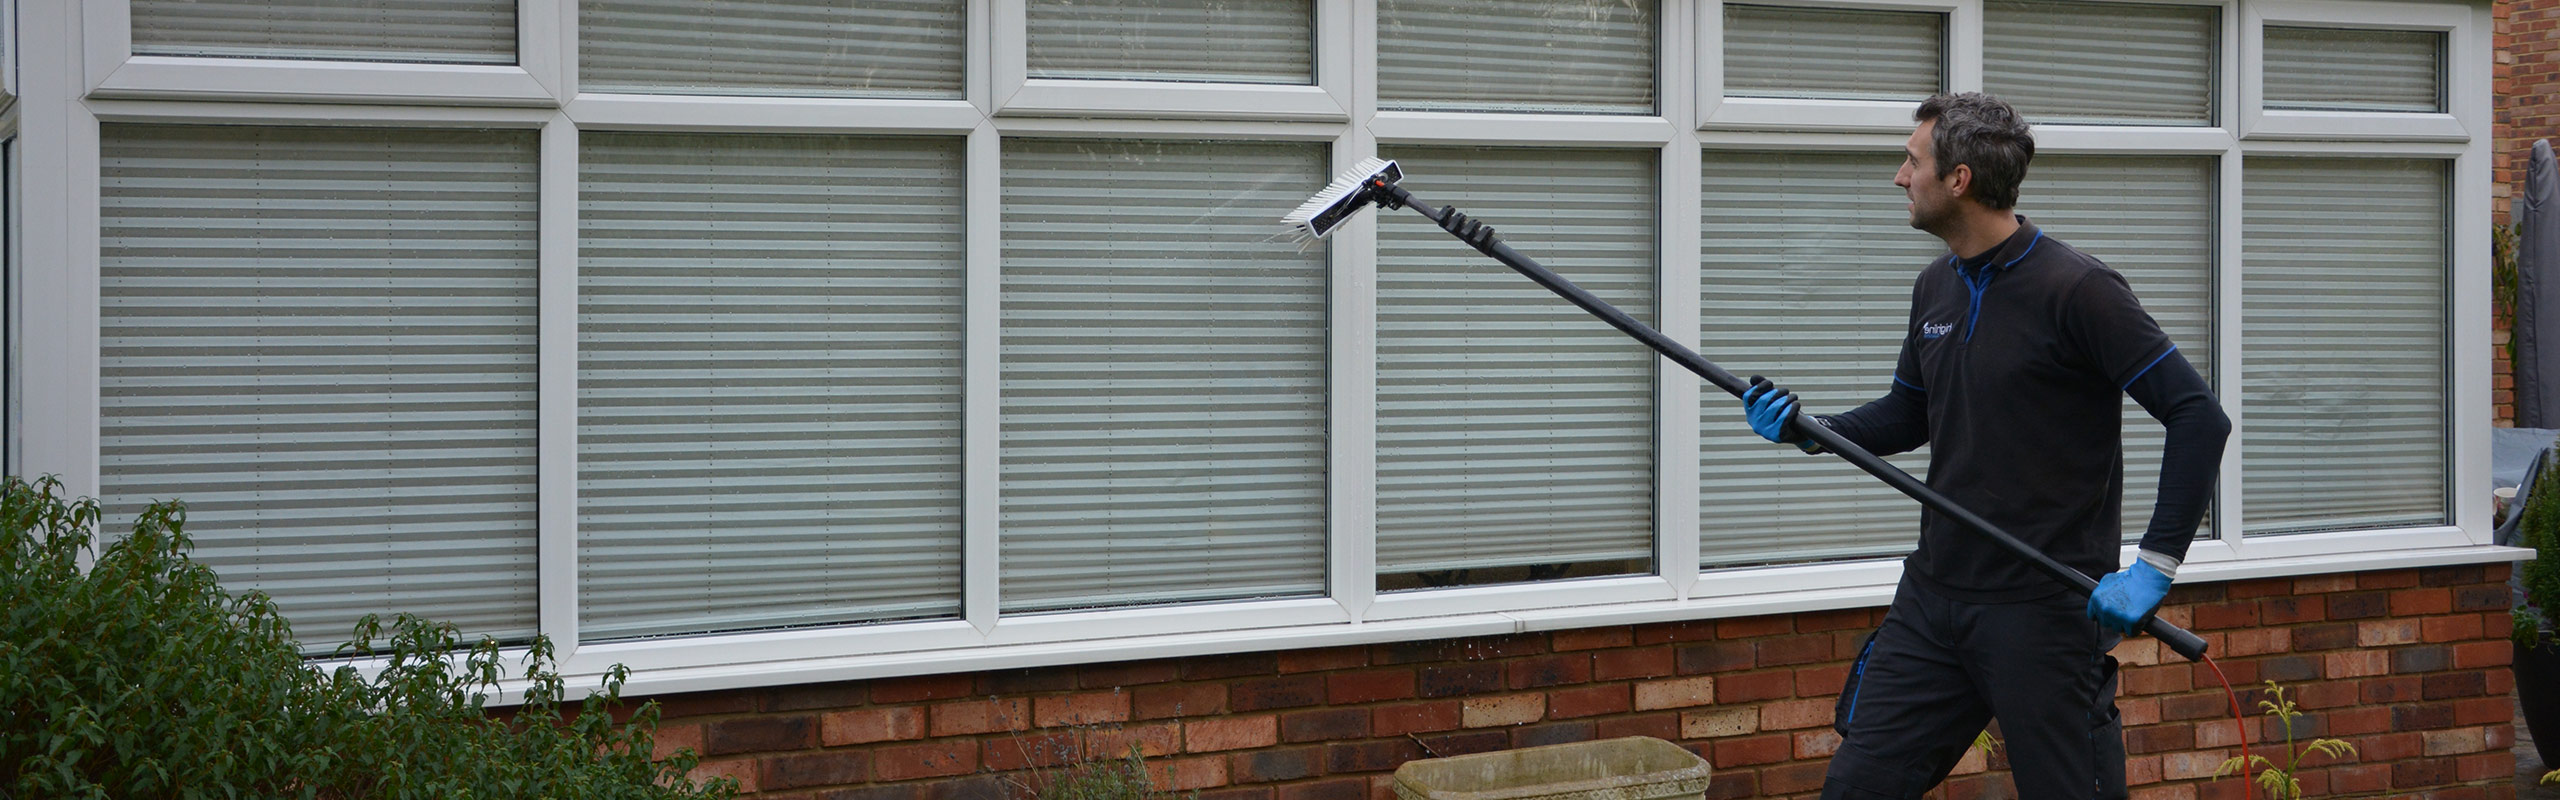 Window Cleaning Berkshire